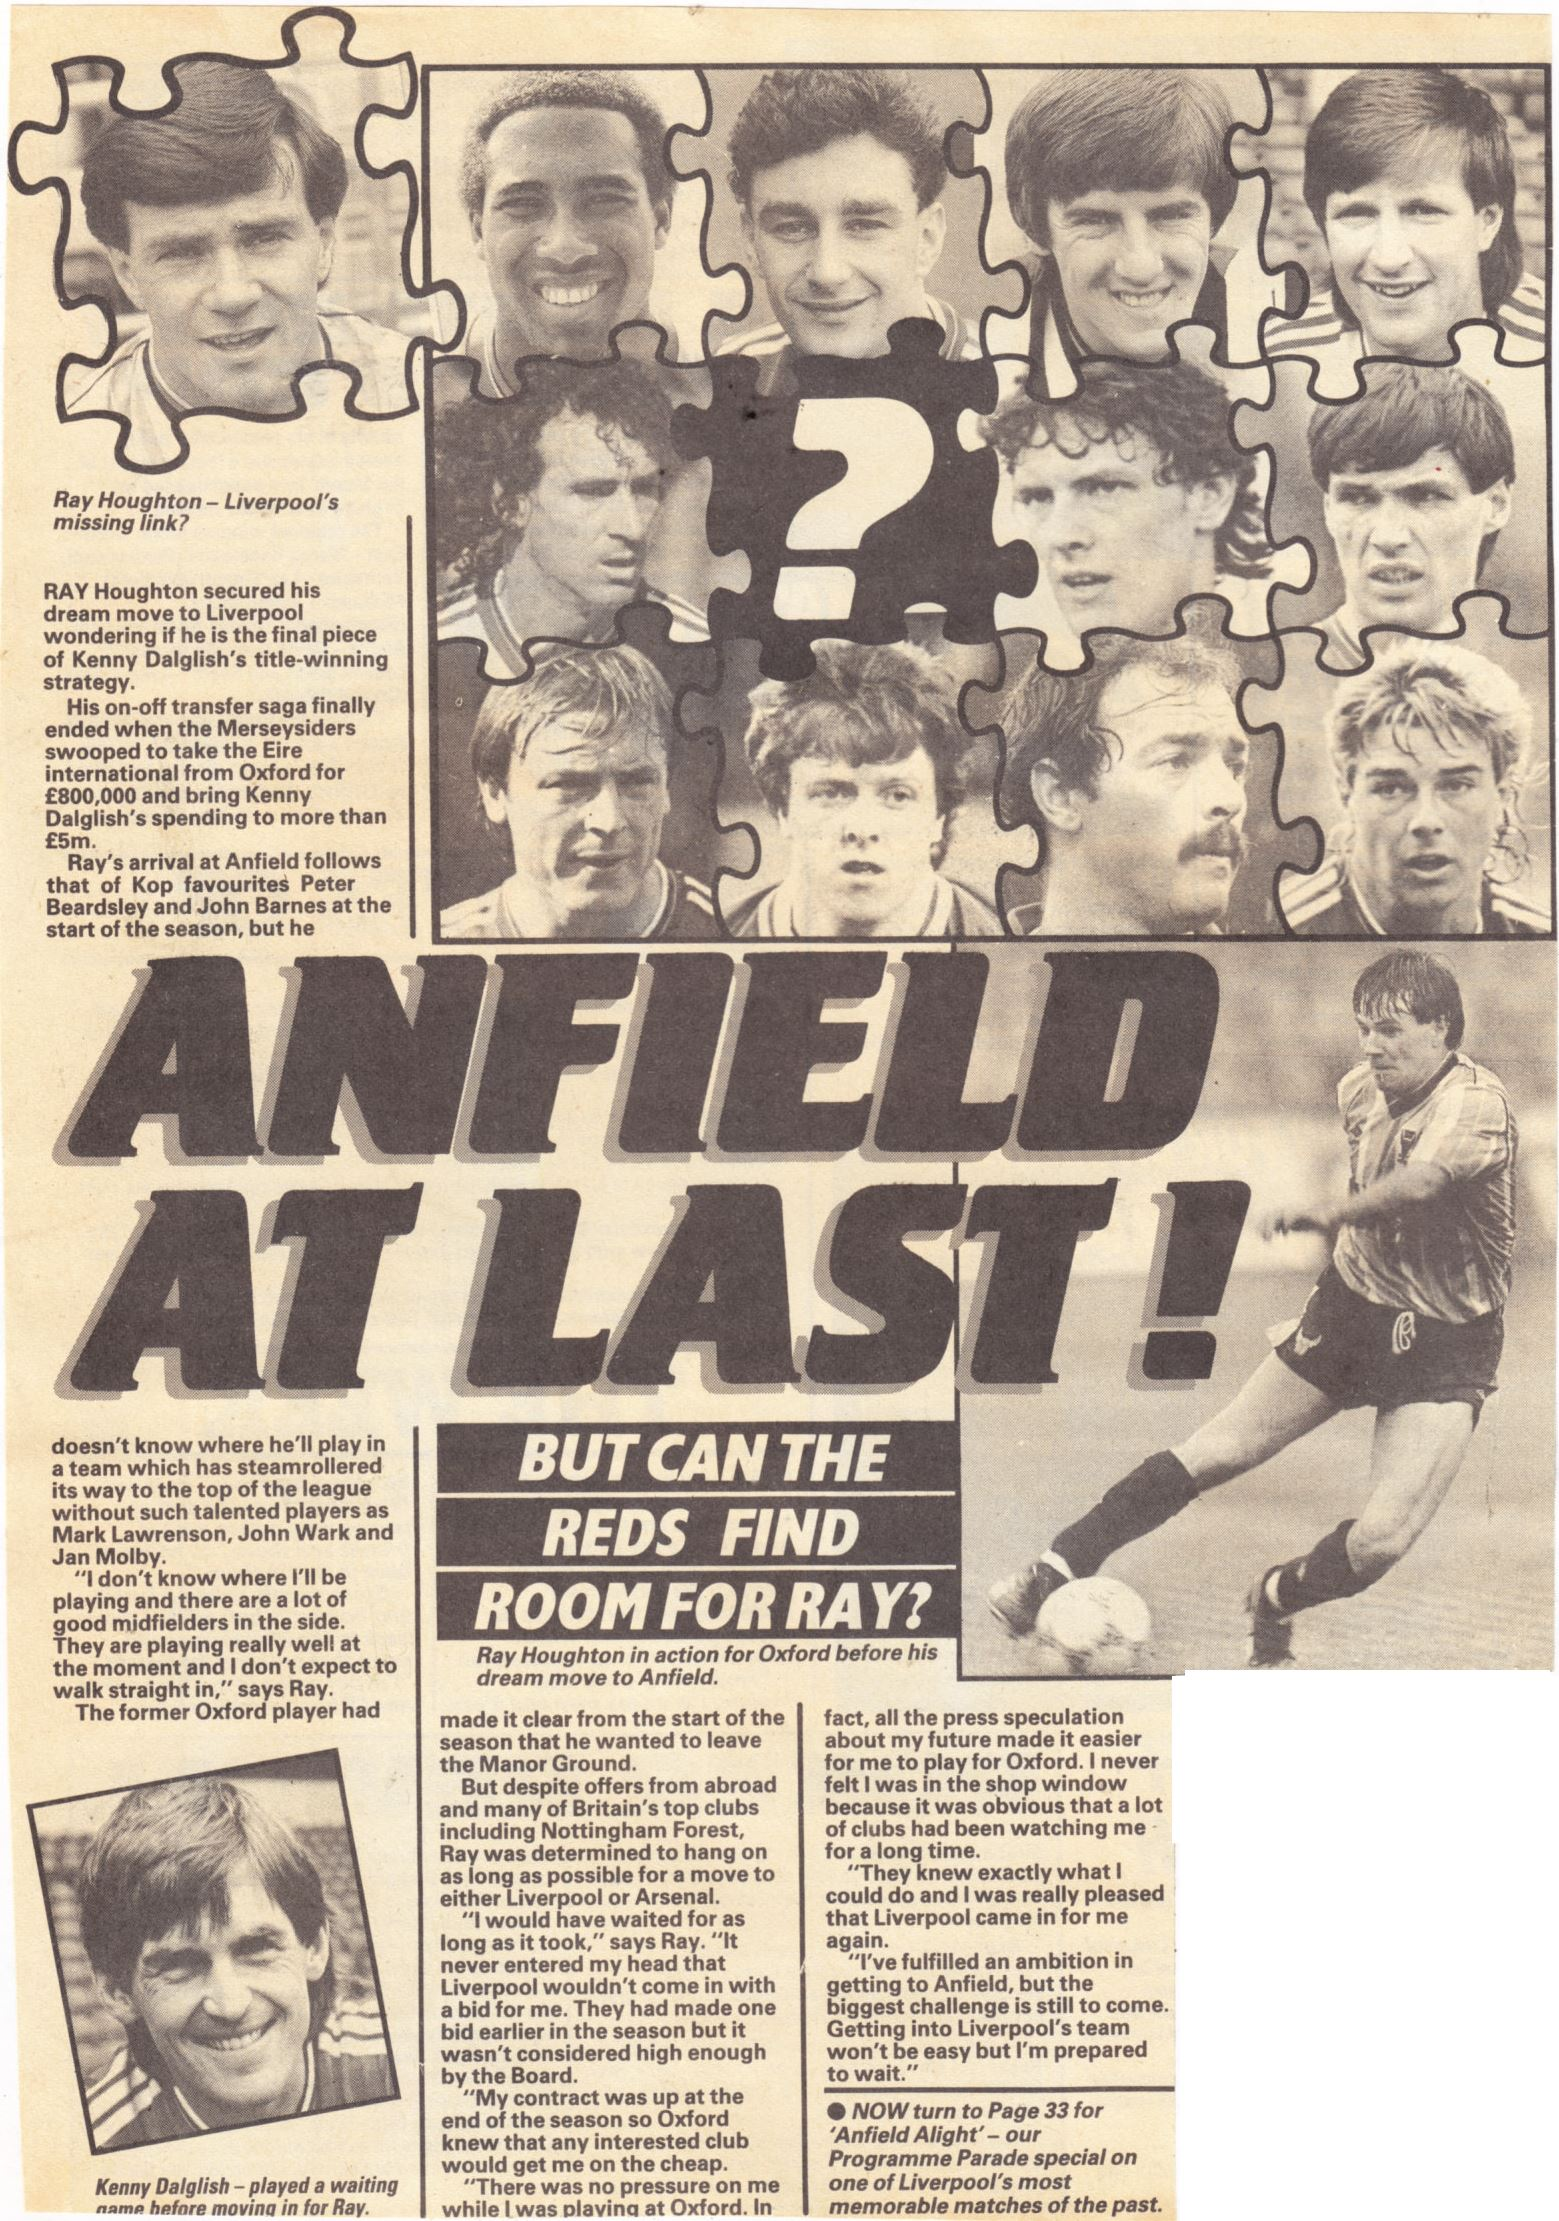 Houghton at Anfield at last! - October 1987